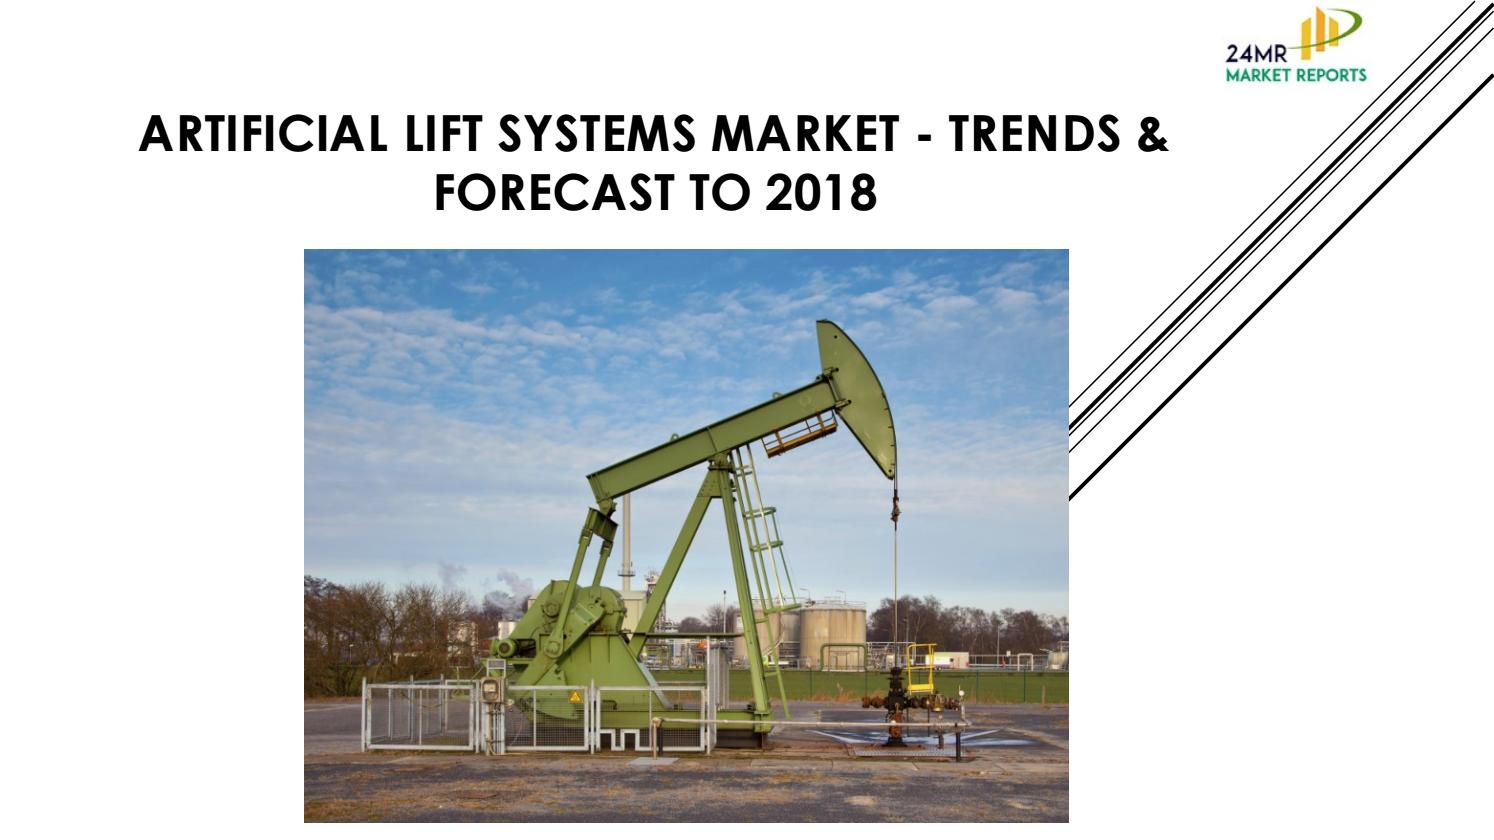 artificial lift systems market forecast 13 7 Request sample of market research report on global artificial lift systems sales market report forecast 2017 to 2022 explore detailed toc, tables and figures of global artificial lift systems sales market report forecast 2017 to 2022.